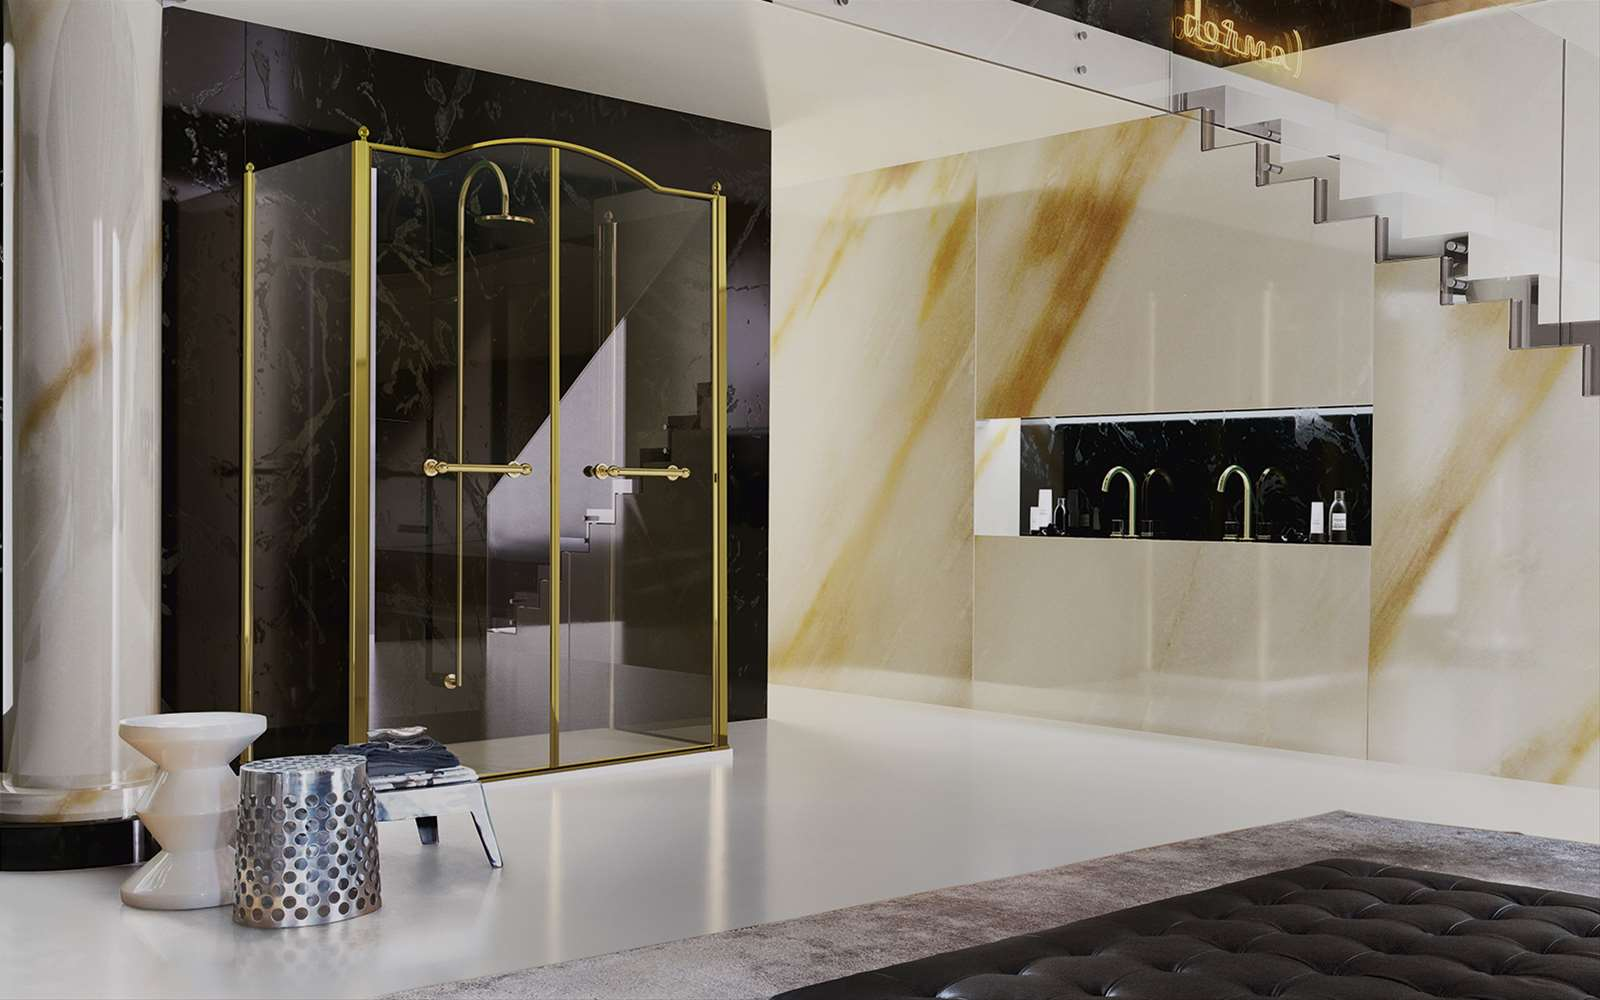 Gold | Le prestige du luxe Made in Italy